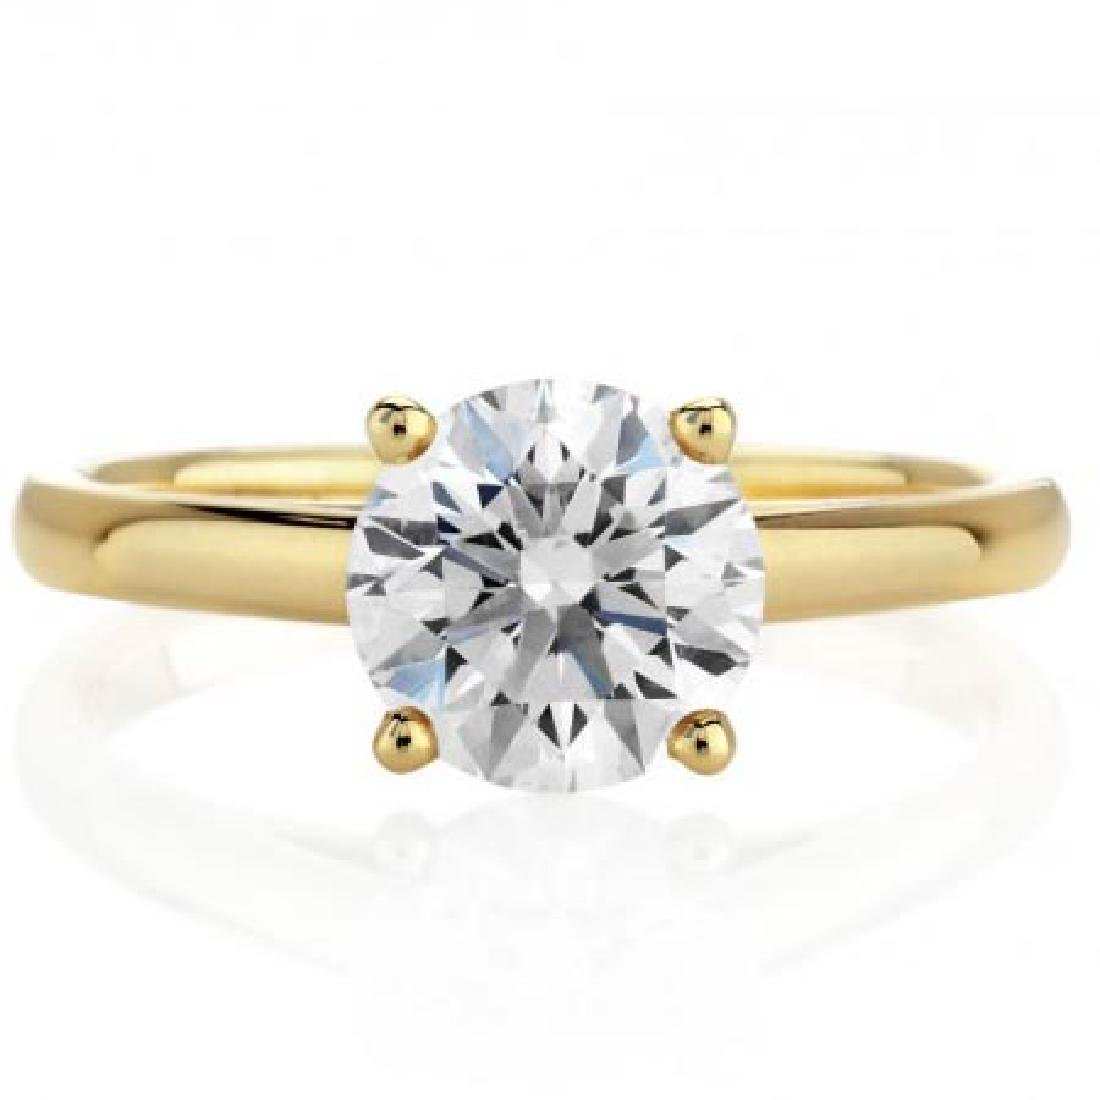 CERTIFIED 0.52 CTW ROUND D/I1 SOLITAIRE RING IN 14K YEL